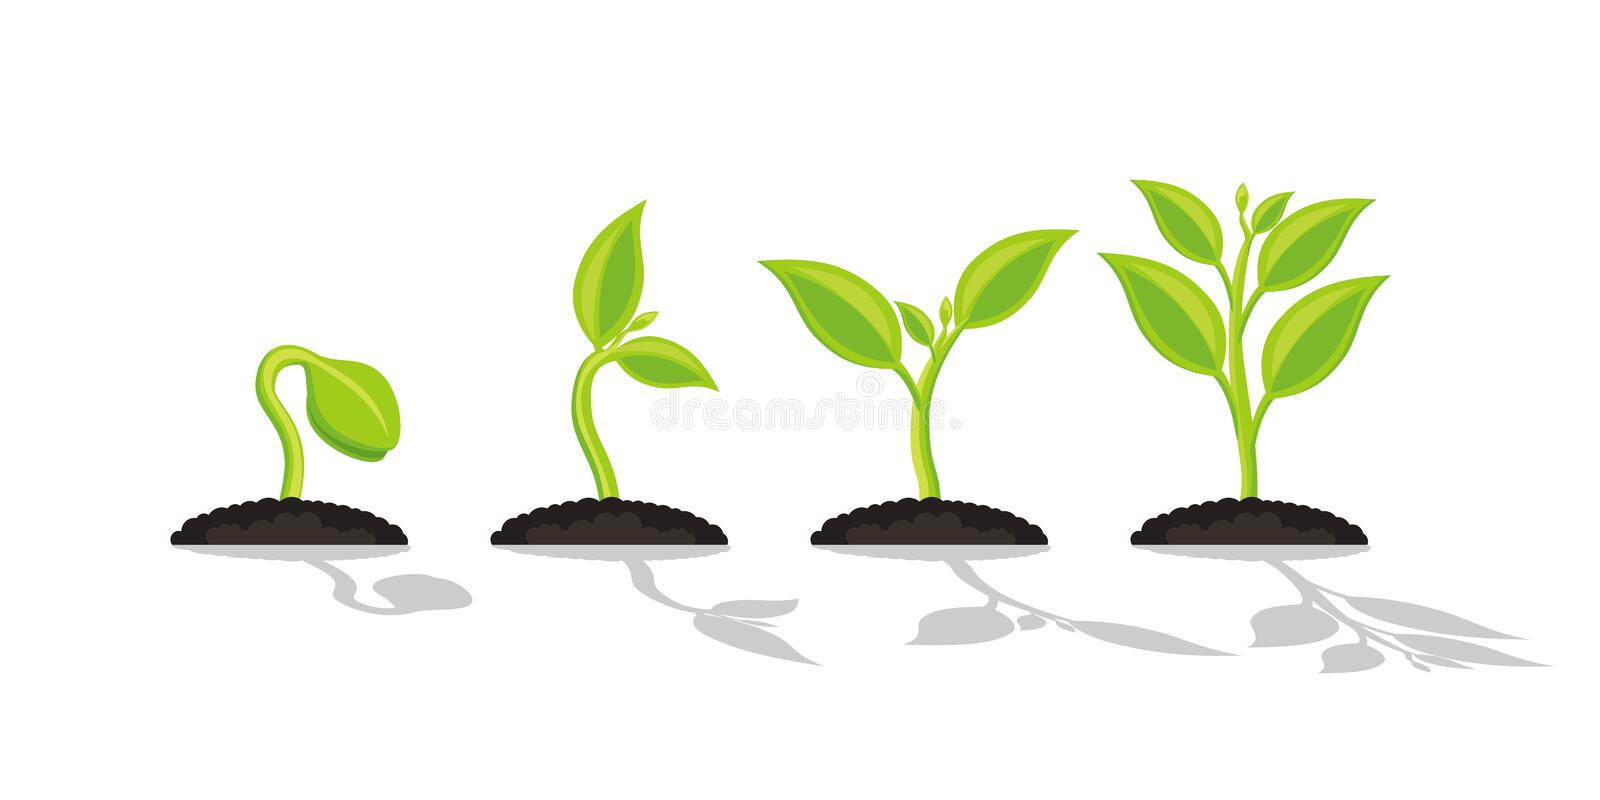 Infographic of planting tree. Seedling gardening plant. Seeds sprout in ground. Sprout, plant, tree growing agriculture icons. stock illustration